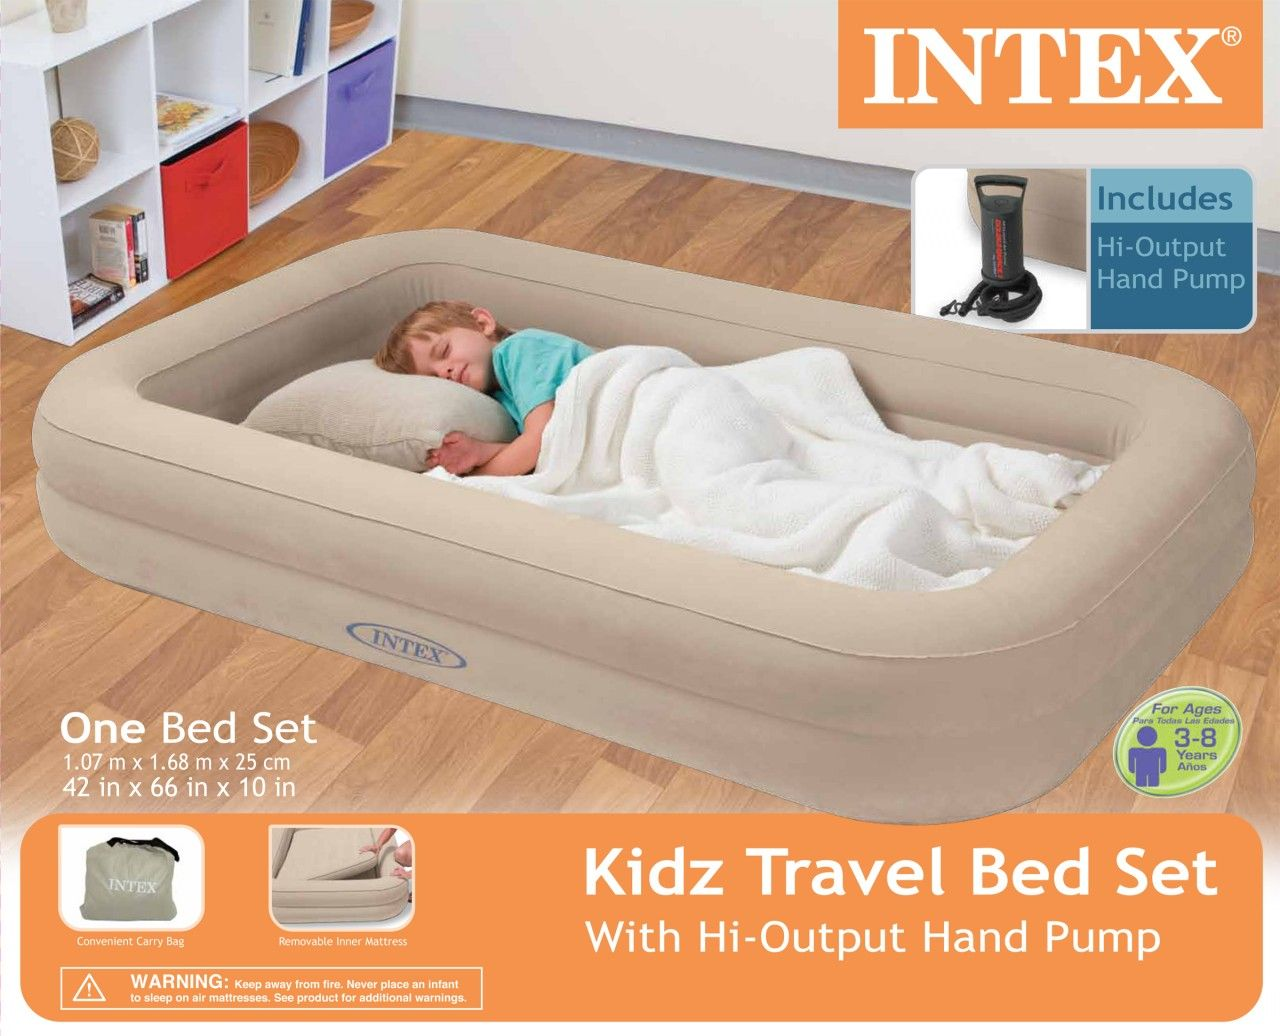 Why Getting A Toddler Bed And Mattress Set Is Important Designalls In 2020 Toddler Travel Bed Kids Travel Bed Twin Air Mattress